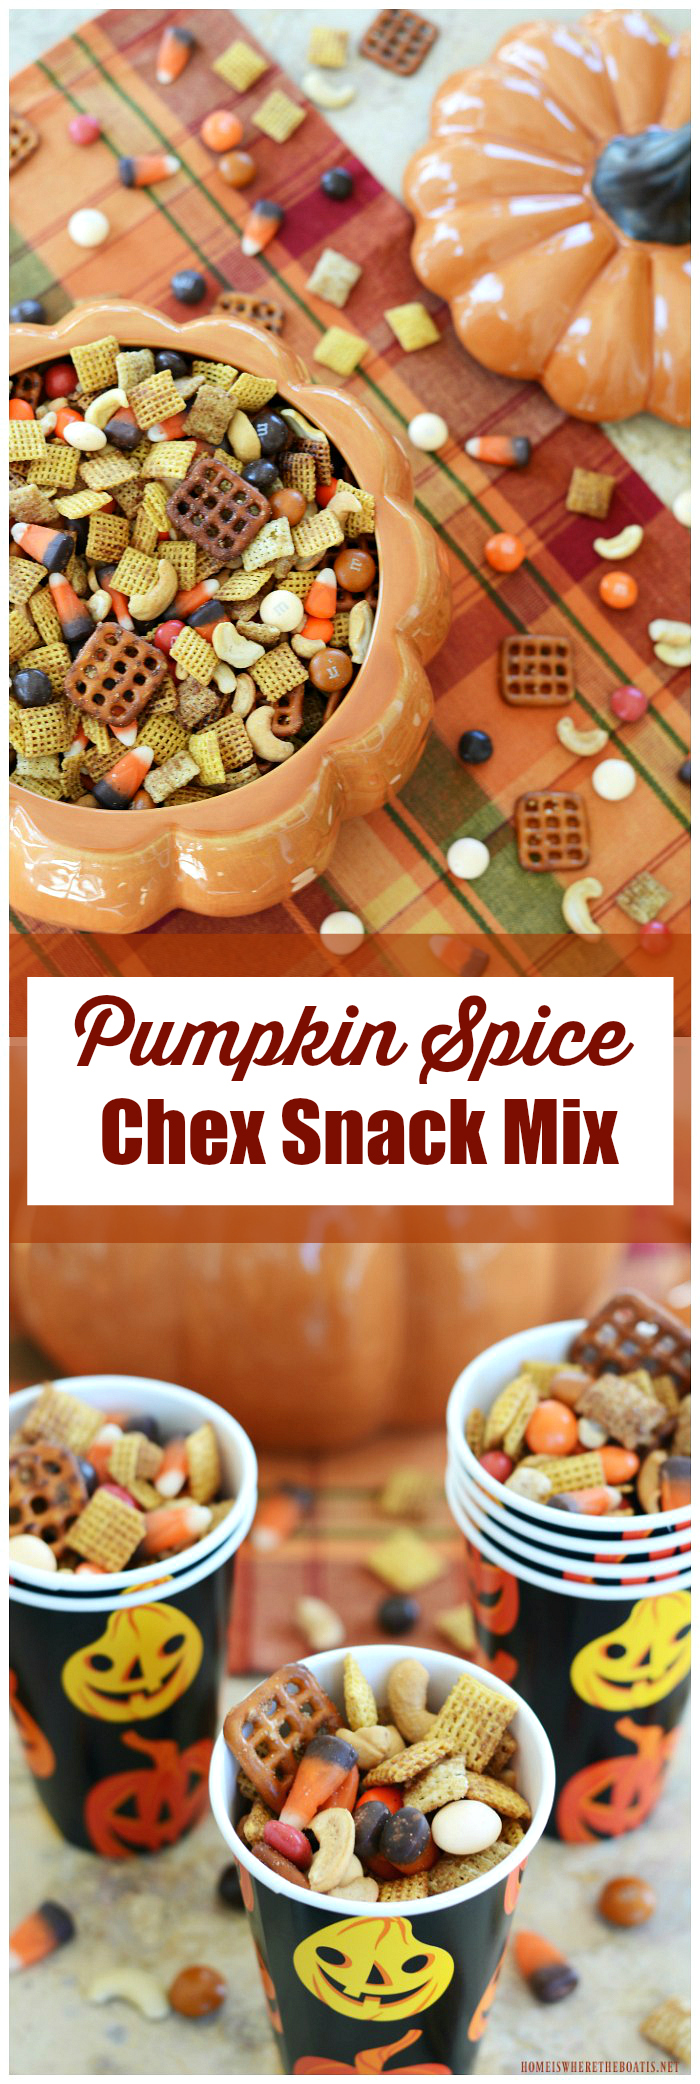 Calling Pumpkin Spice fans, Pumpkin Spice Chex Snack Mix is an easy recipe for fall snacking! The combination of sweet and salty is highly addictive, which may or may not be a good thing. ;) Best of all, it can be made ahead and comes together in 5 minutes.